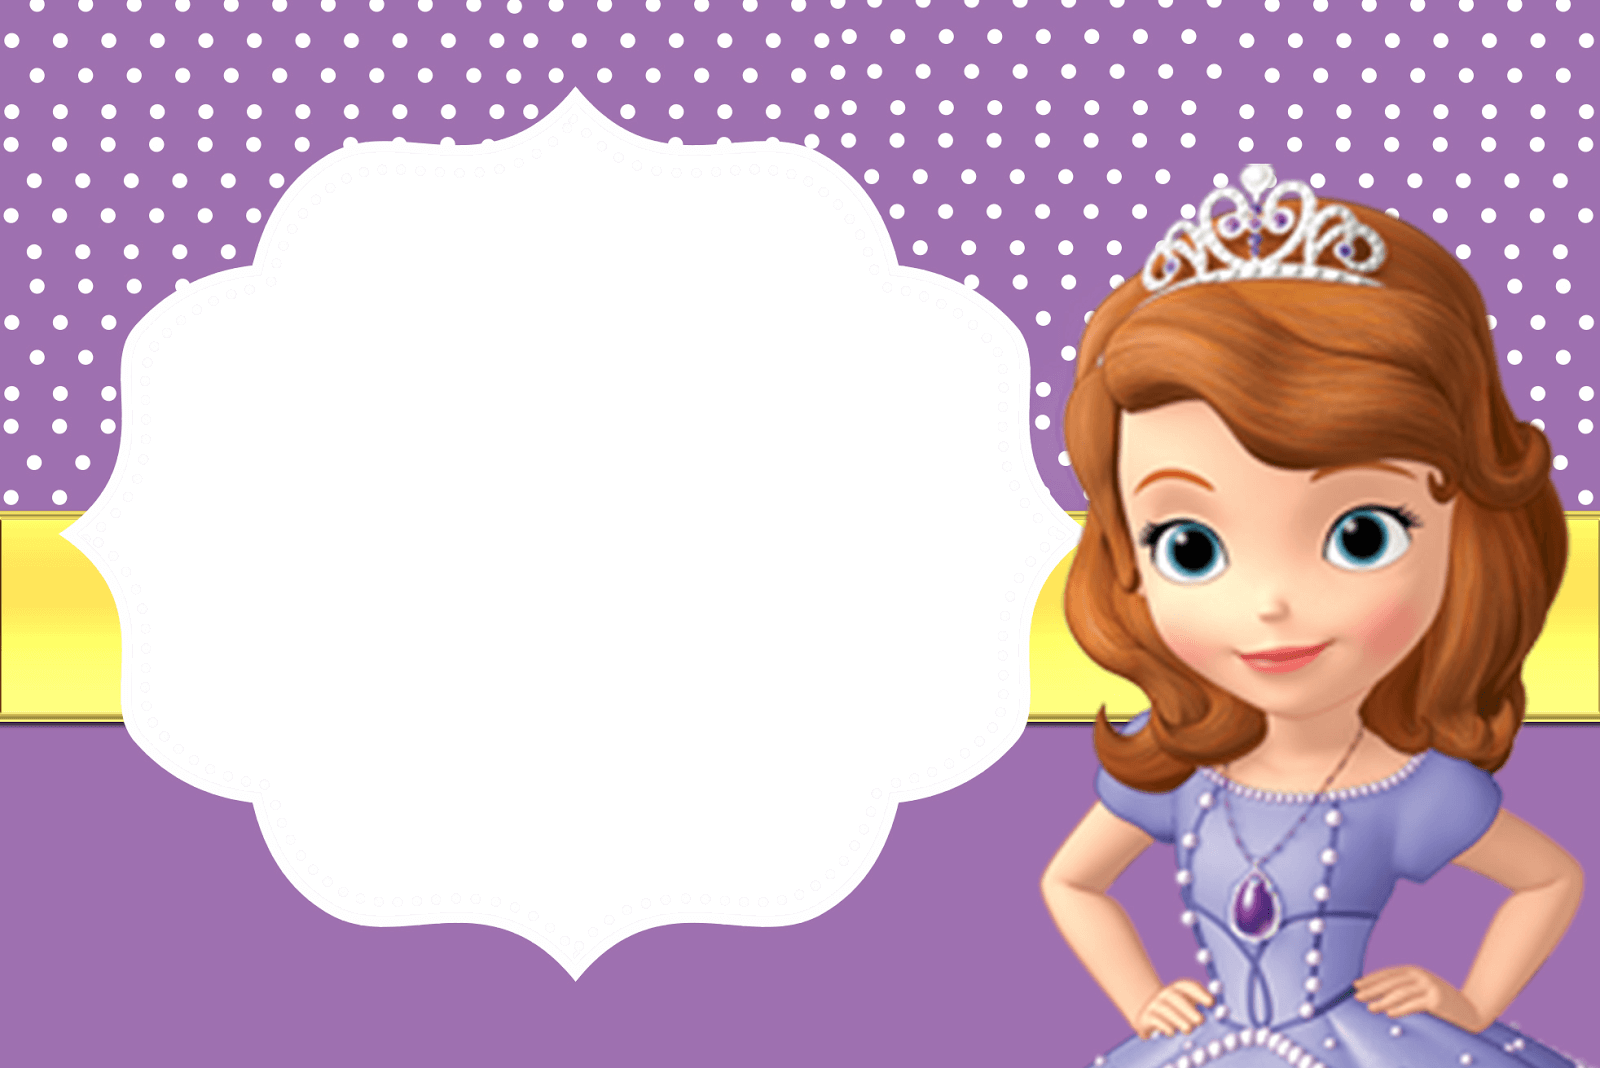 Sofia The First Birthday Invitations with perfect invitation design